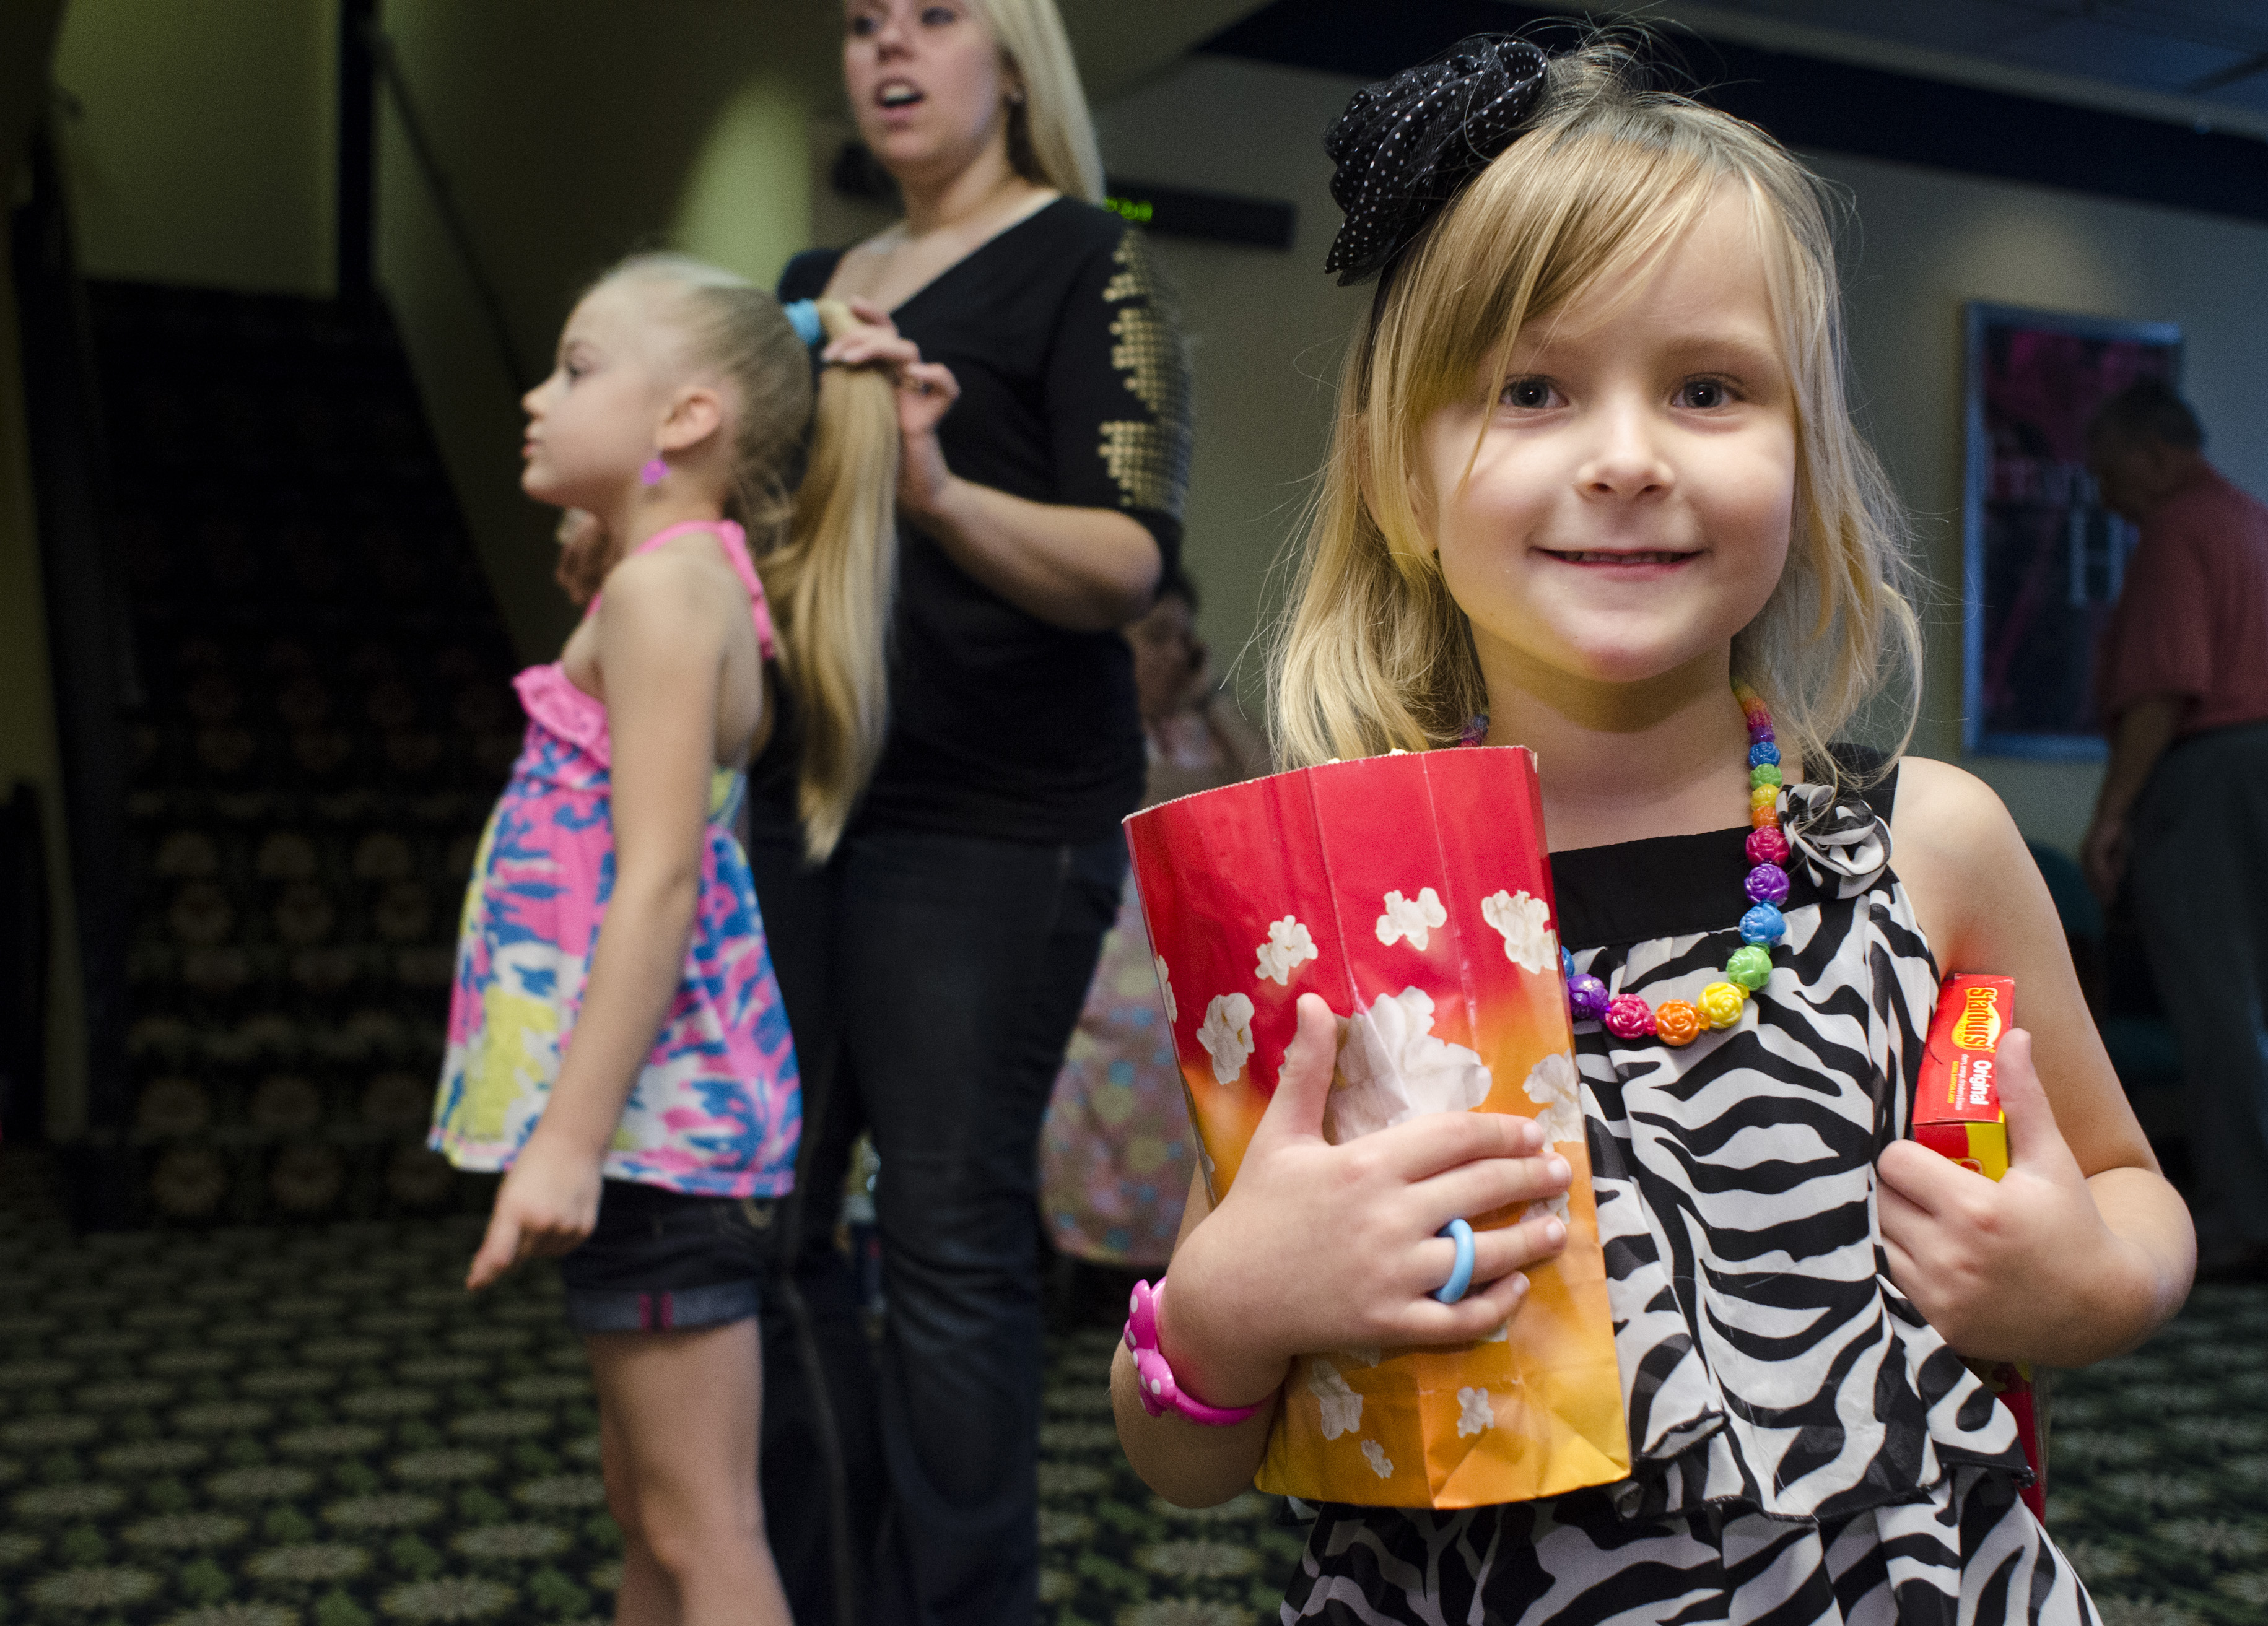 From The Films Went To The Big Brothers Big Sisters Of Athens County Movie Fans Joined Us For Free Popcorn Courtesy Of Shagbark Seed Mill Raffles